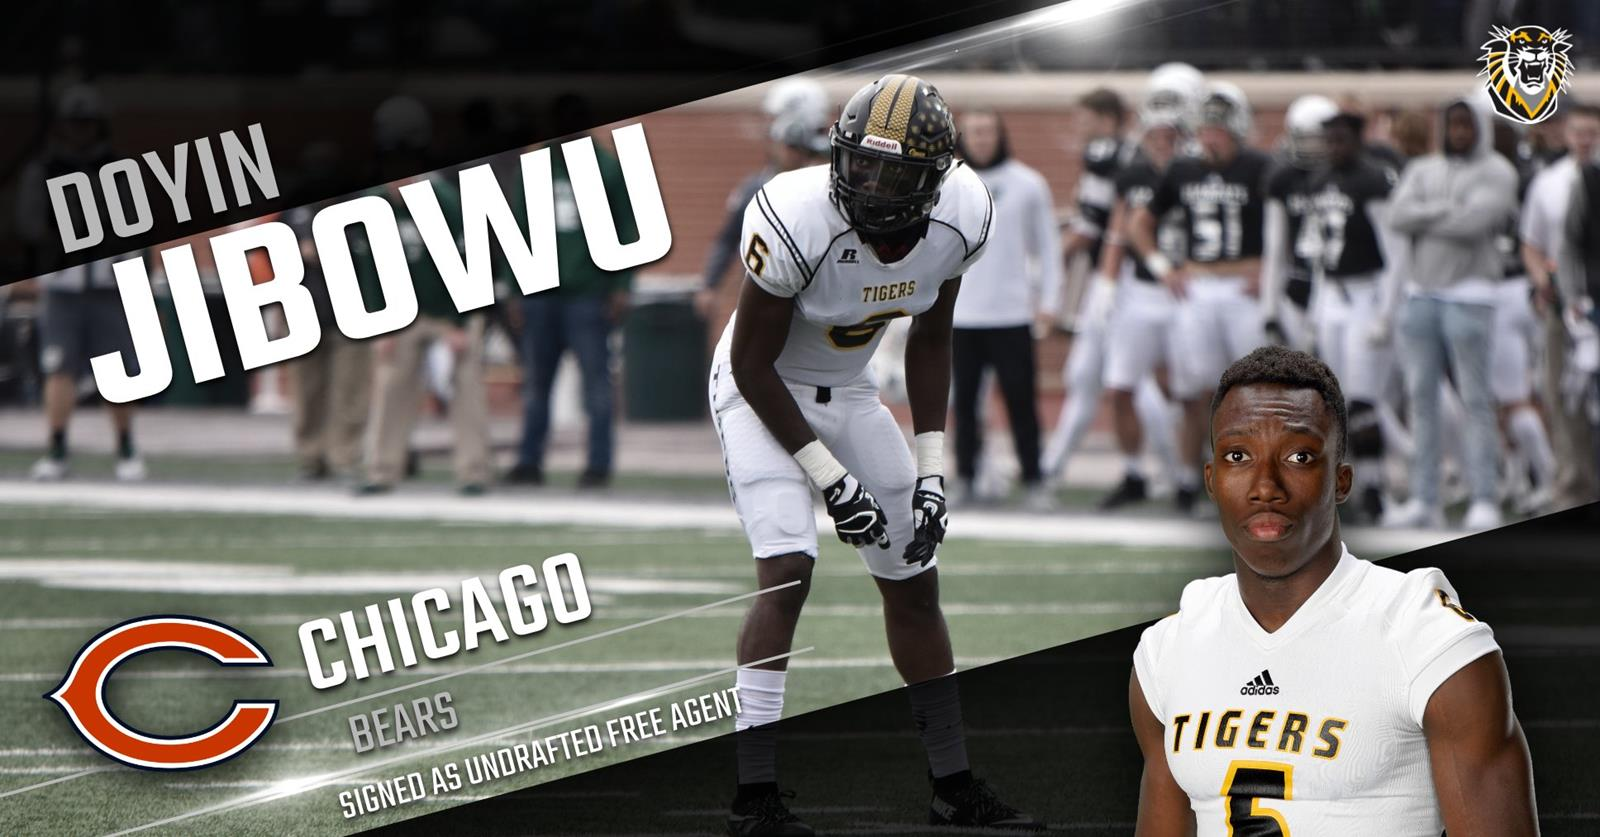 Doyin Jibowu Signed by Chicago Bears as Undrafted Free Agent FHSU